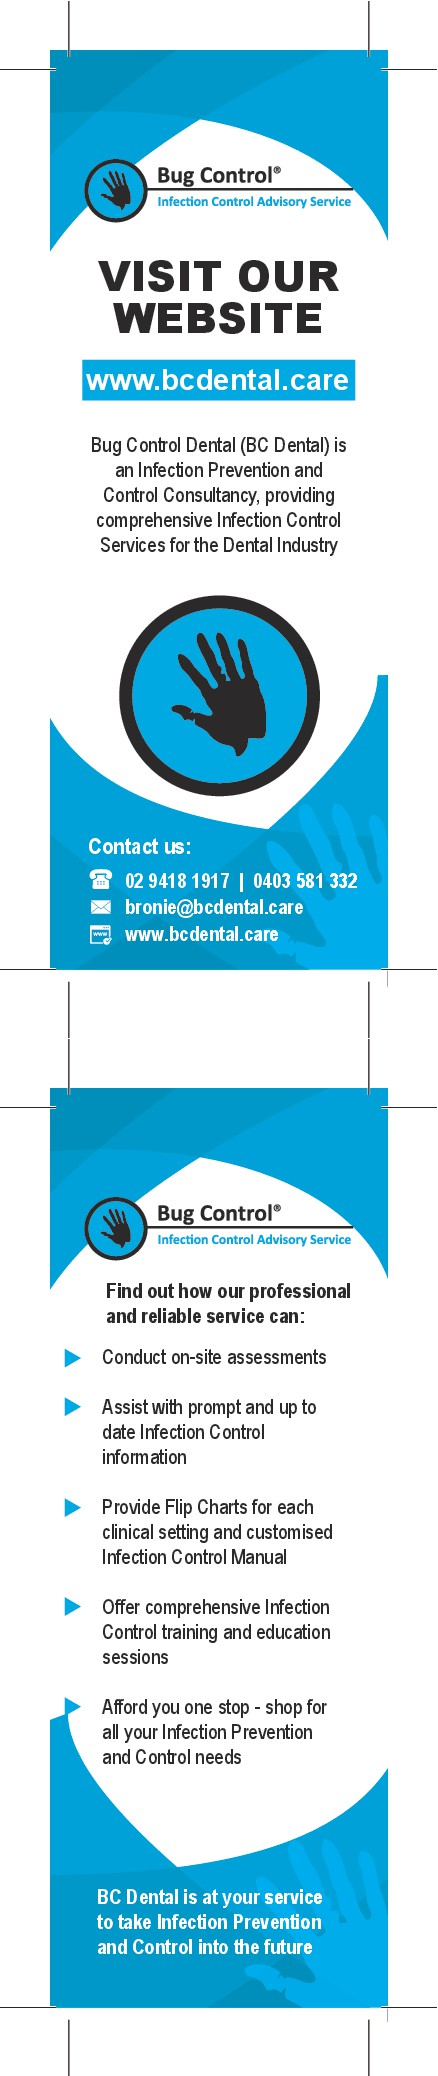 Please create a professional pamphlet and bookmark with clean lines